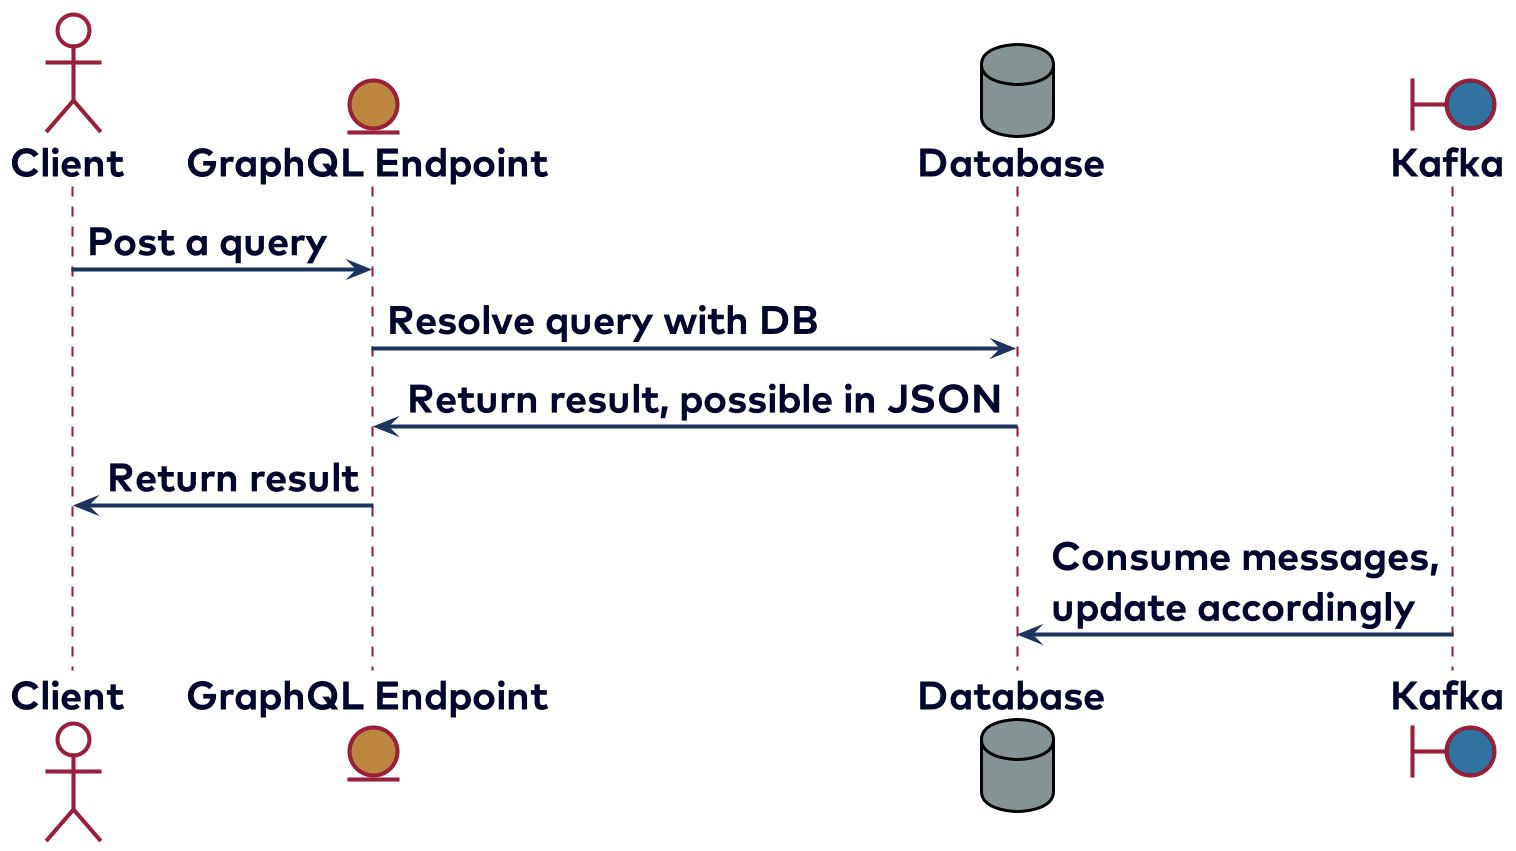 Sequence diagram of using GraphQL to resolve a query using a database